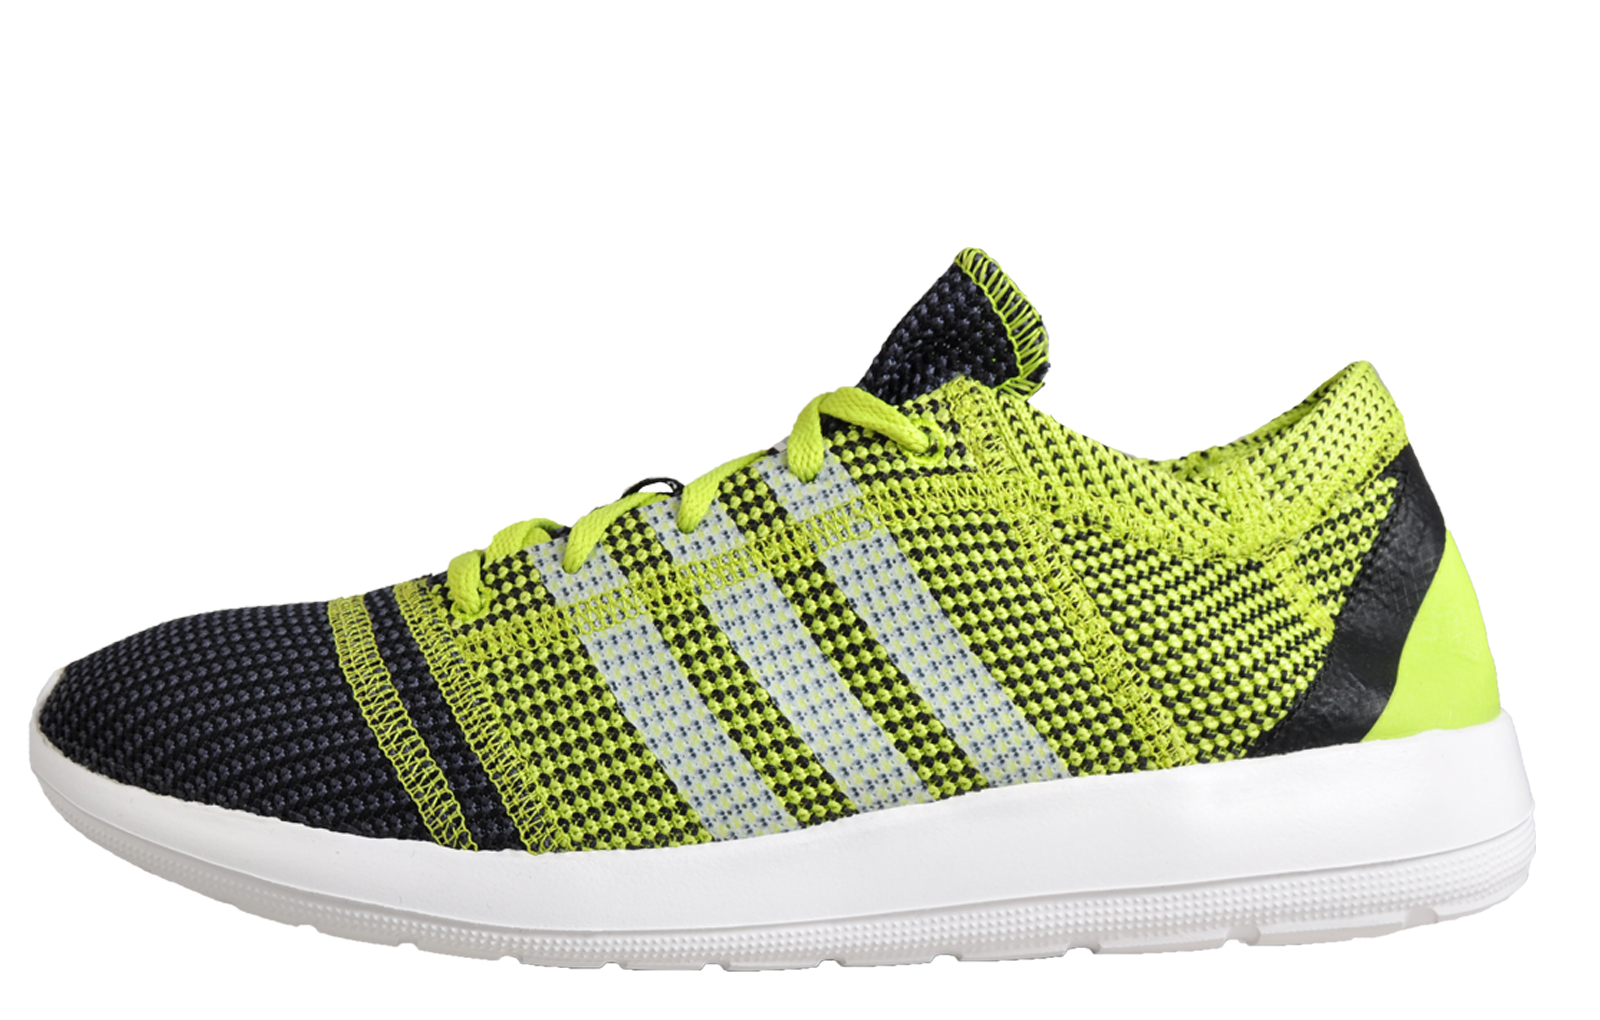 release date 0e3f7 7bba9 340cd 914e0 delicate colors Adidas Element Refine Tricot Men s Premium  Running Shoes Fitness Gym Trainers 0672d 64d2e